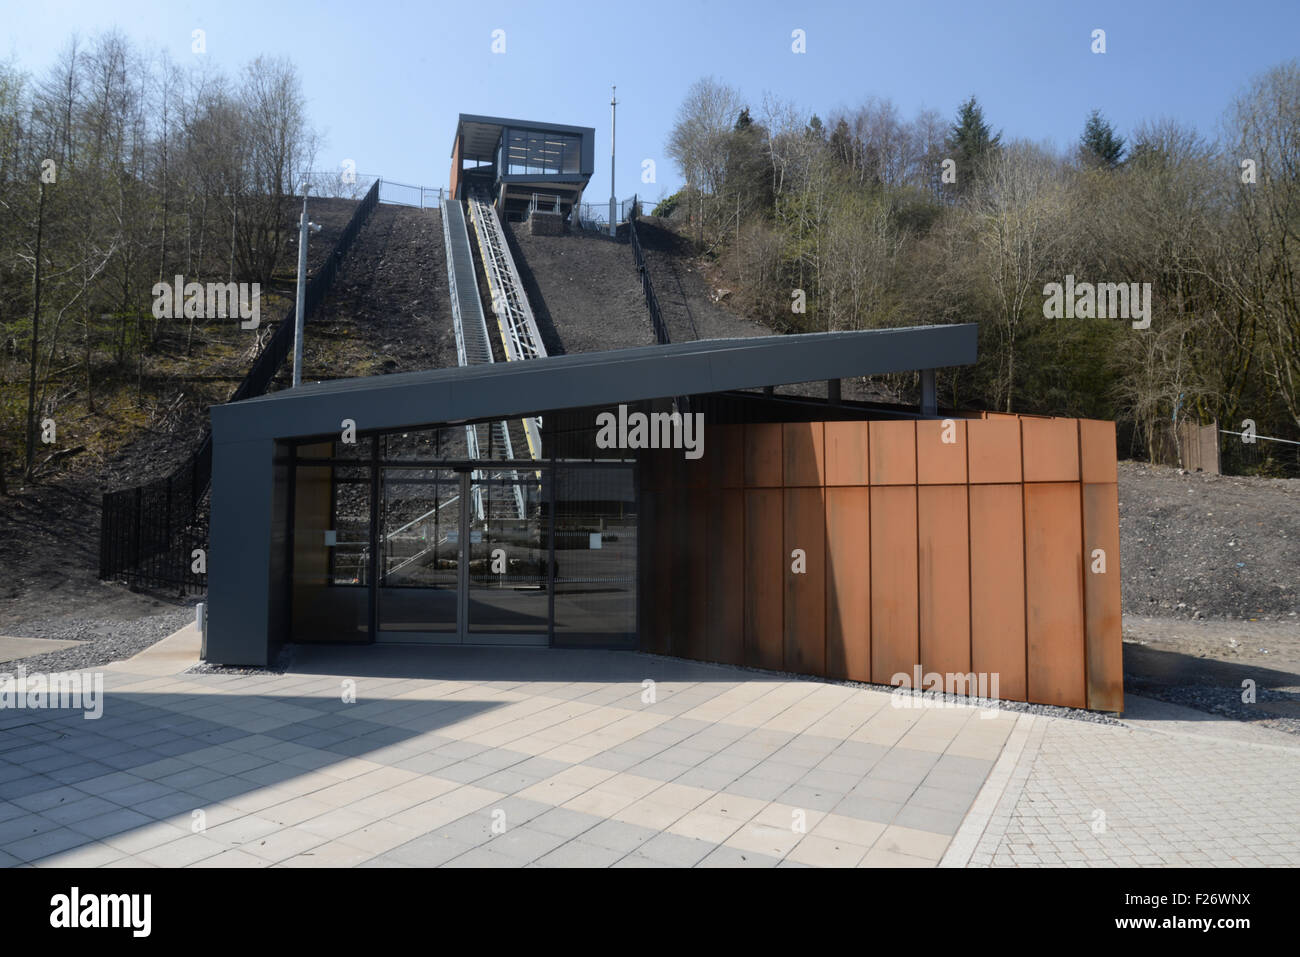 The new funicular cliff railway installed on the site of the old Ebbw Vale Steelworks which is being redevoloped - Stock Image